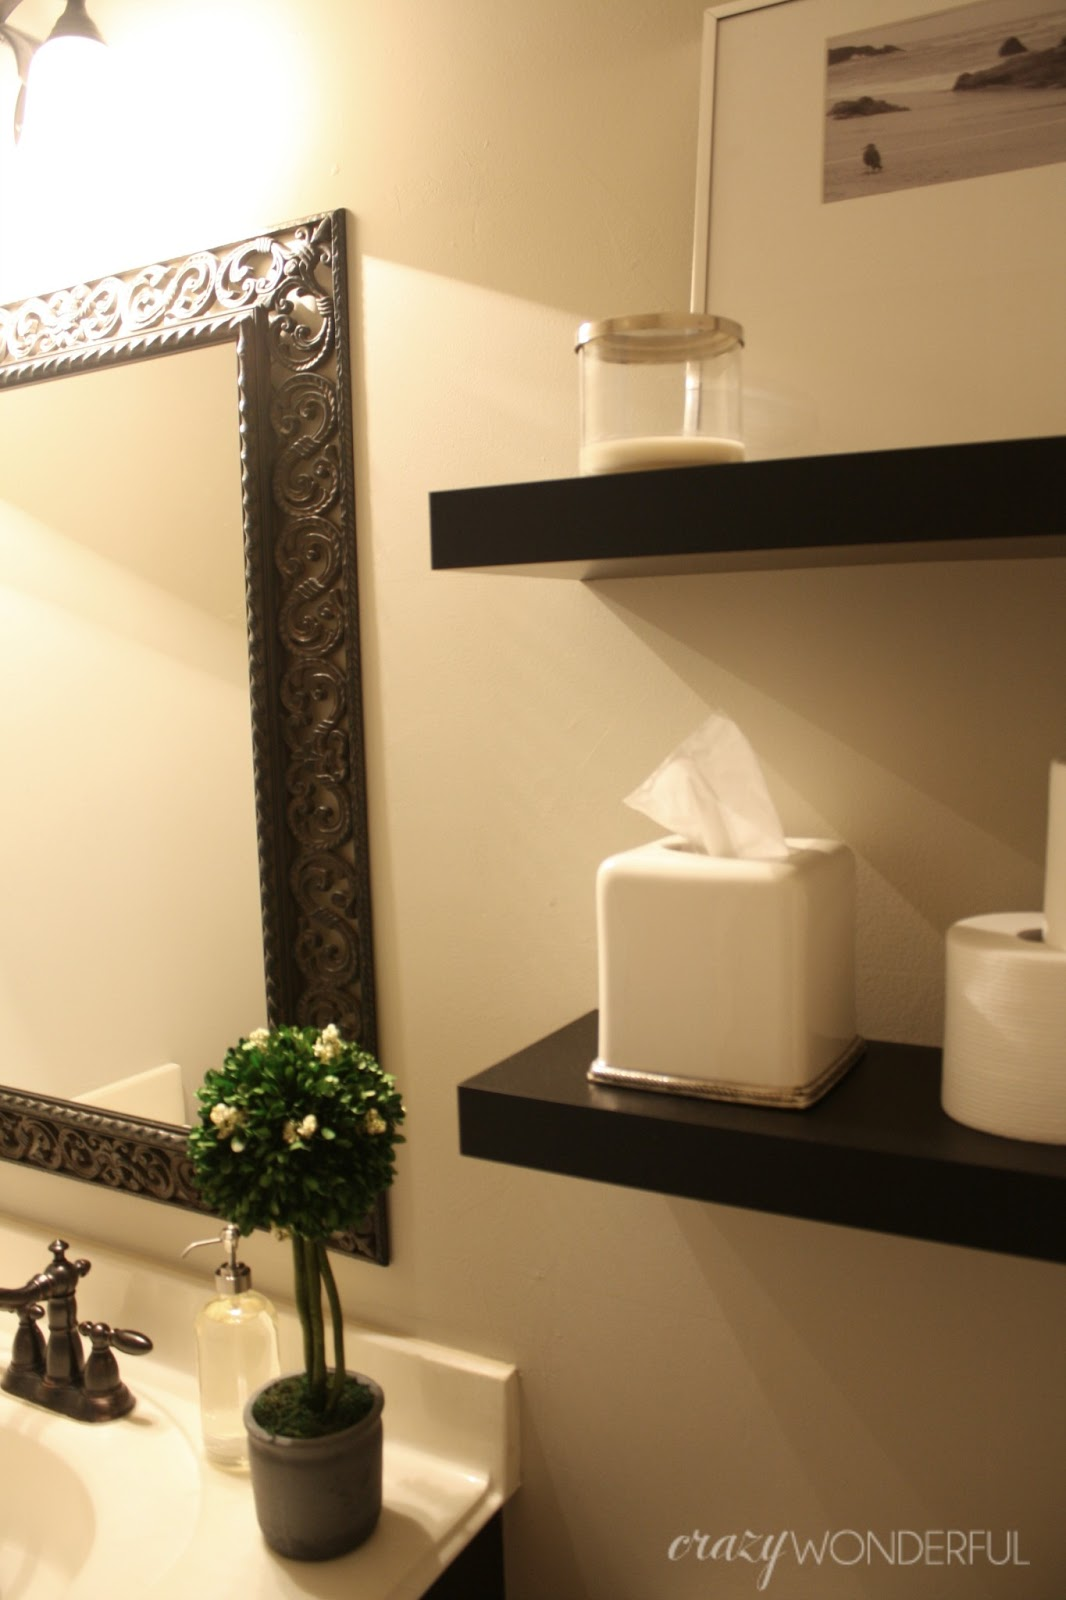 quick powder room makeover - Crazy Wonderful